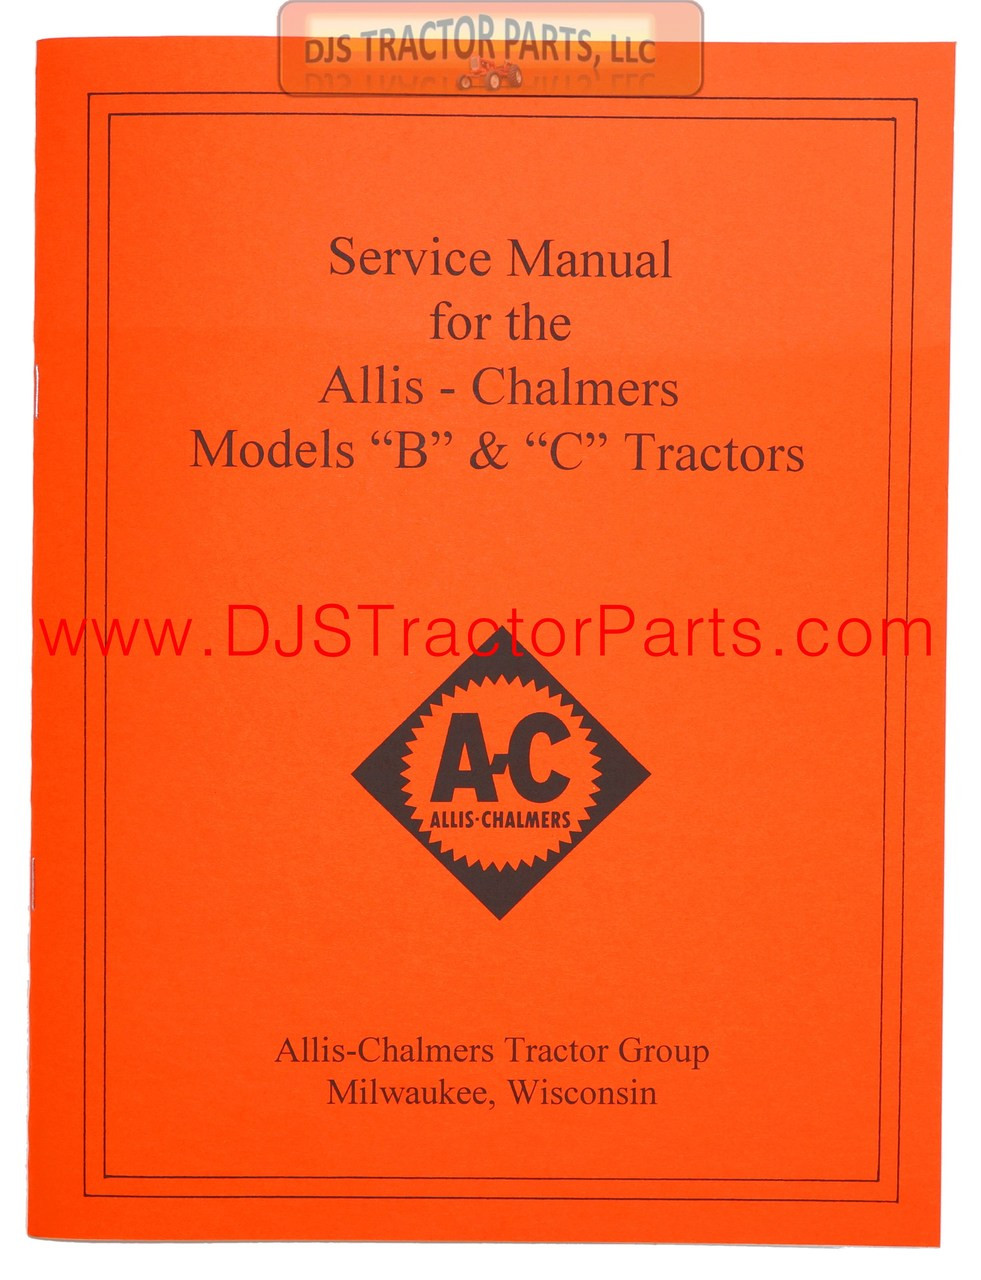 MAN_036D__85937.1428350596?c=2?imbypass=on allis chalmers b, c service manual reprint man036d djs tractor